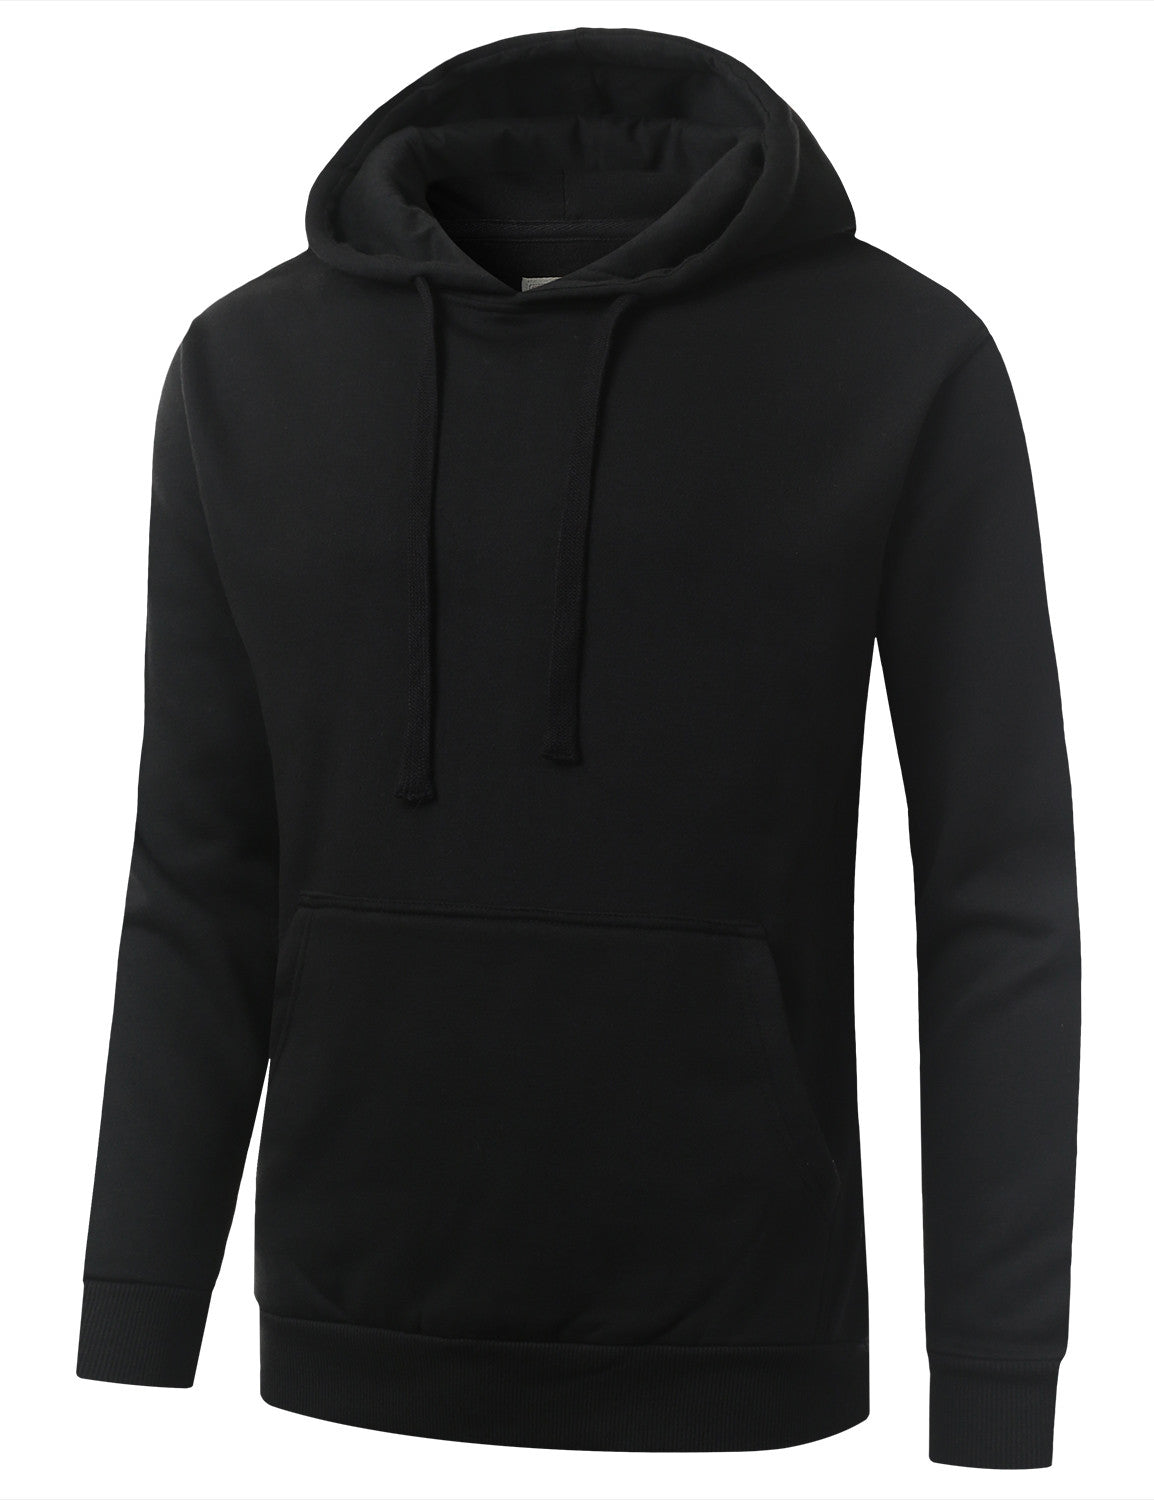 BLACK Basic Long Sleeve Pullover Hoodie Sweatshirt - URBANCREWS